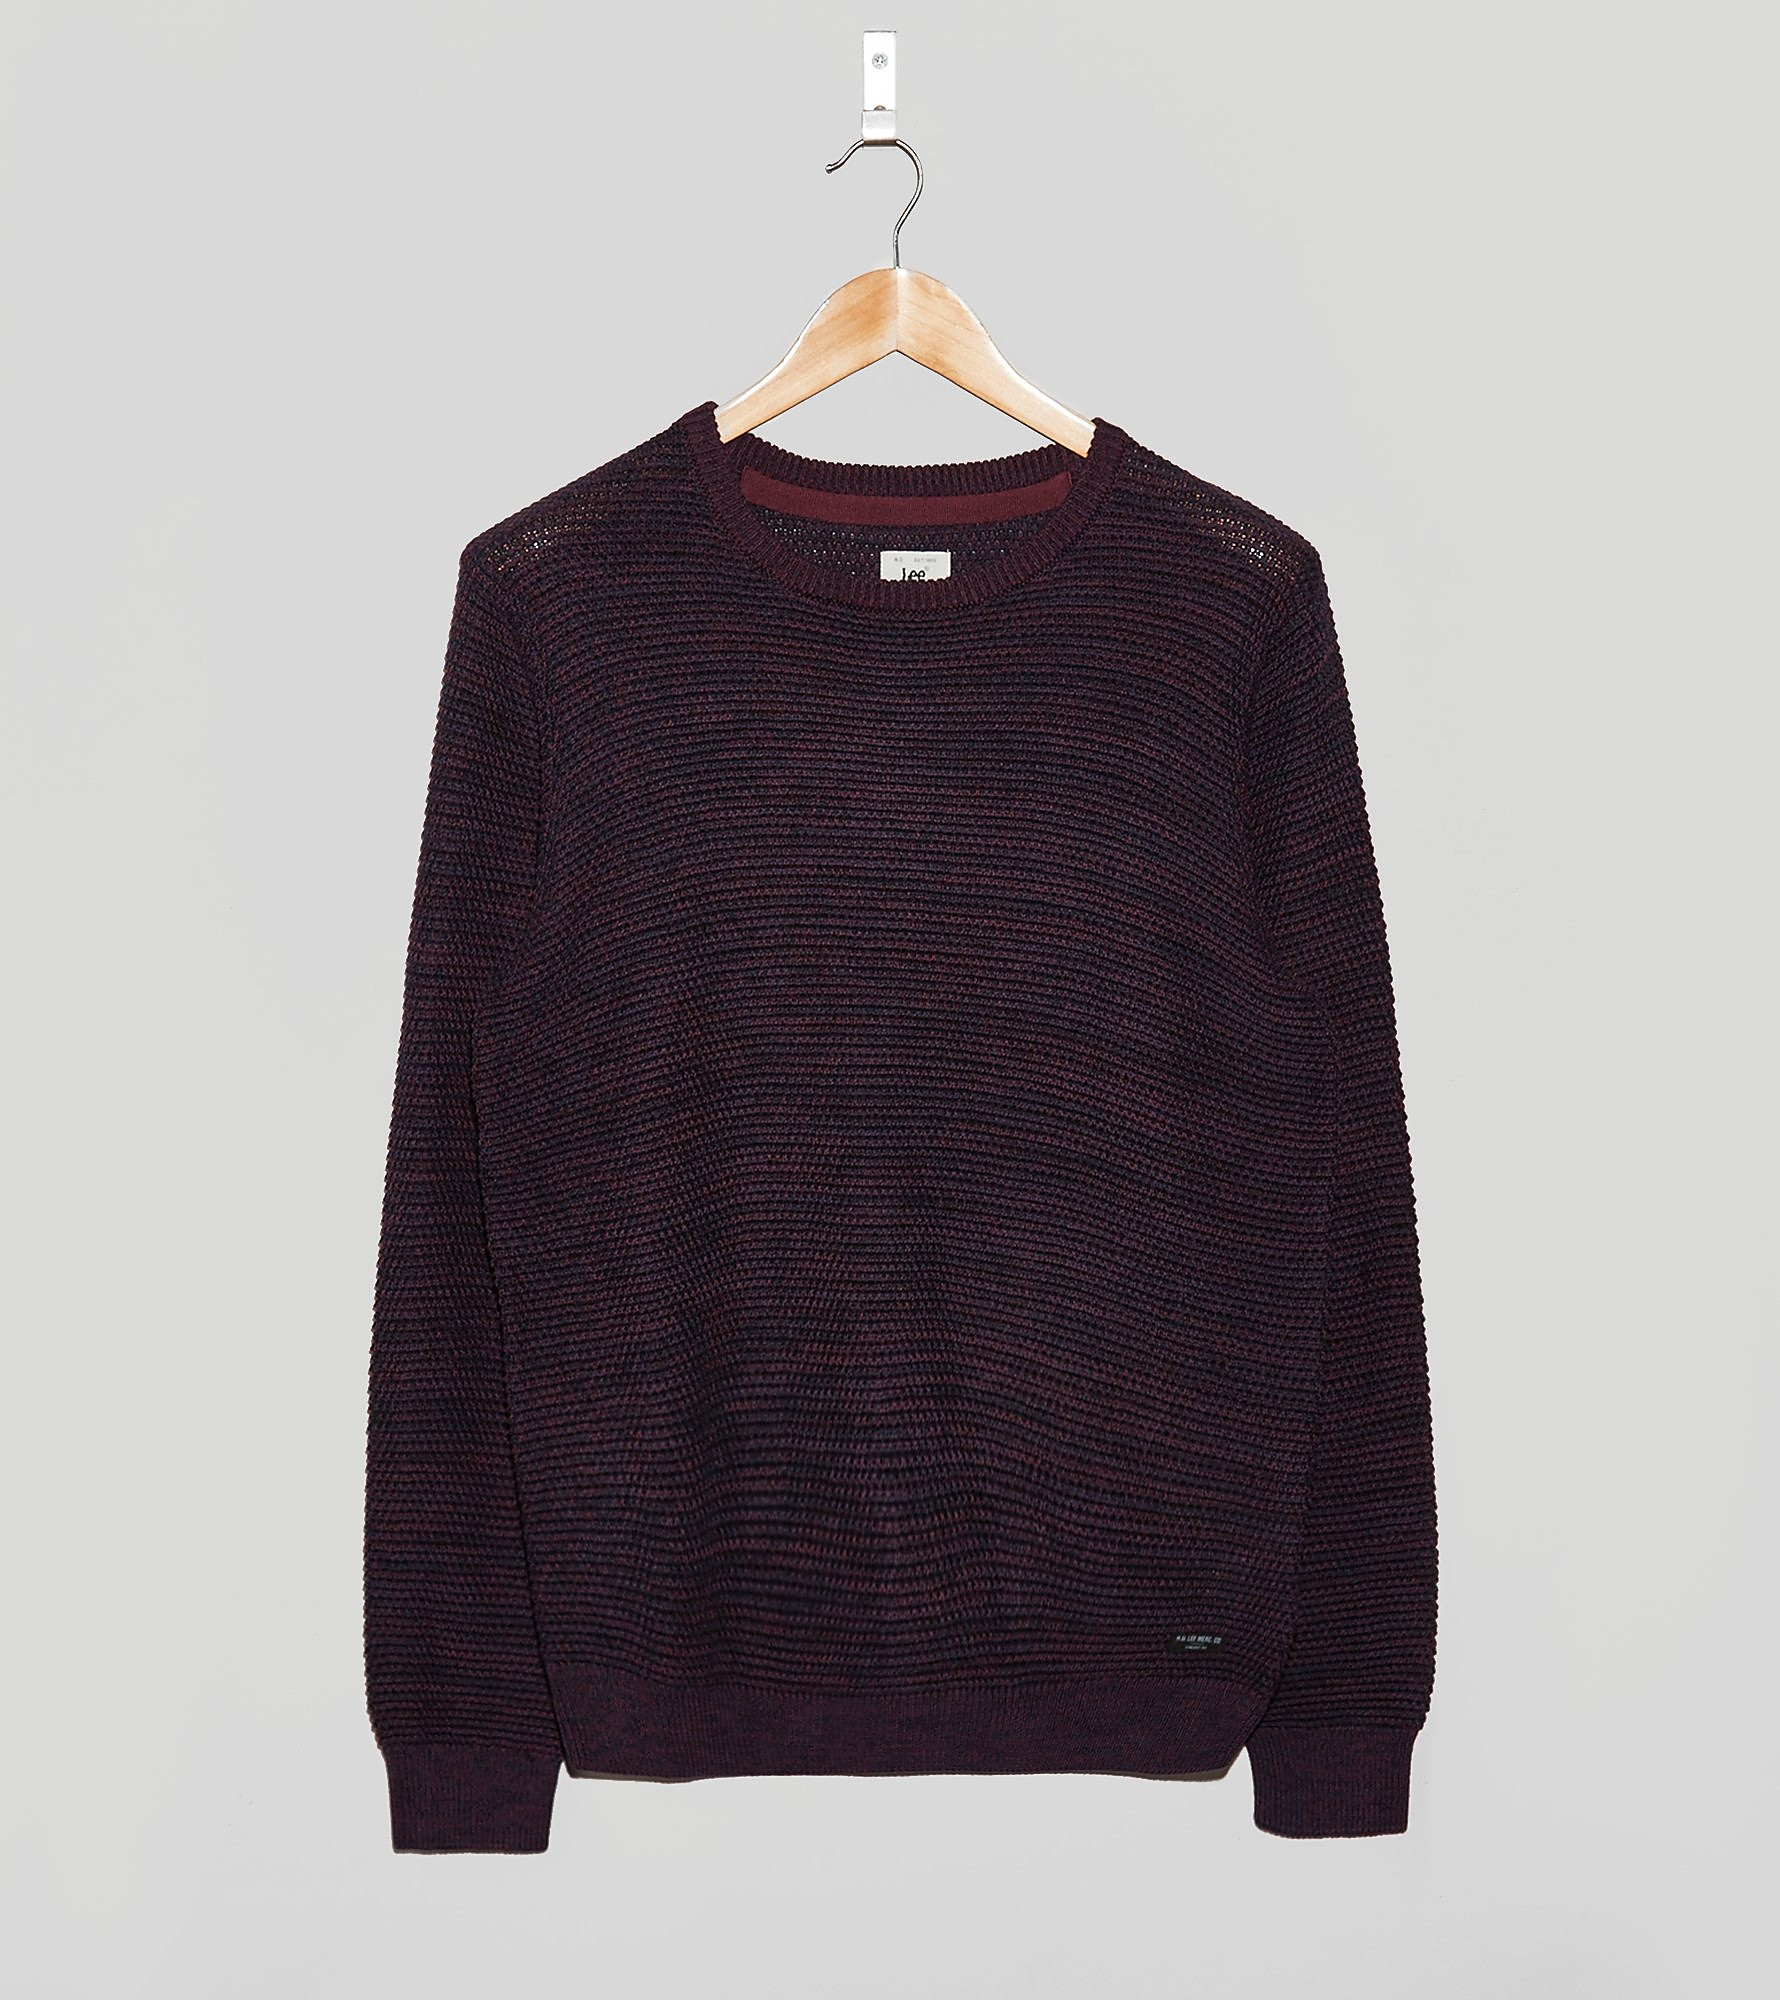 Lee Winter Crew Wool Jumper